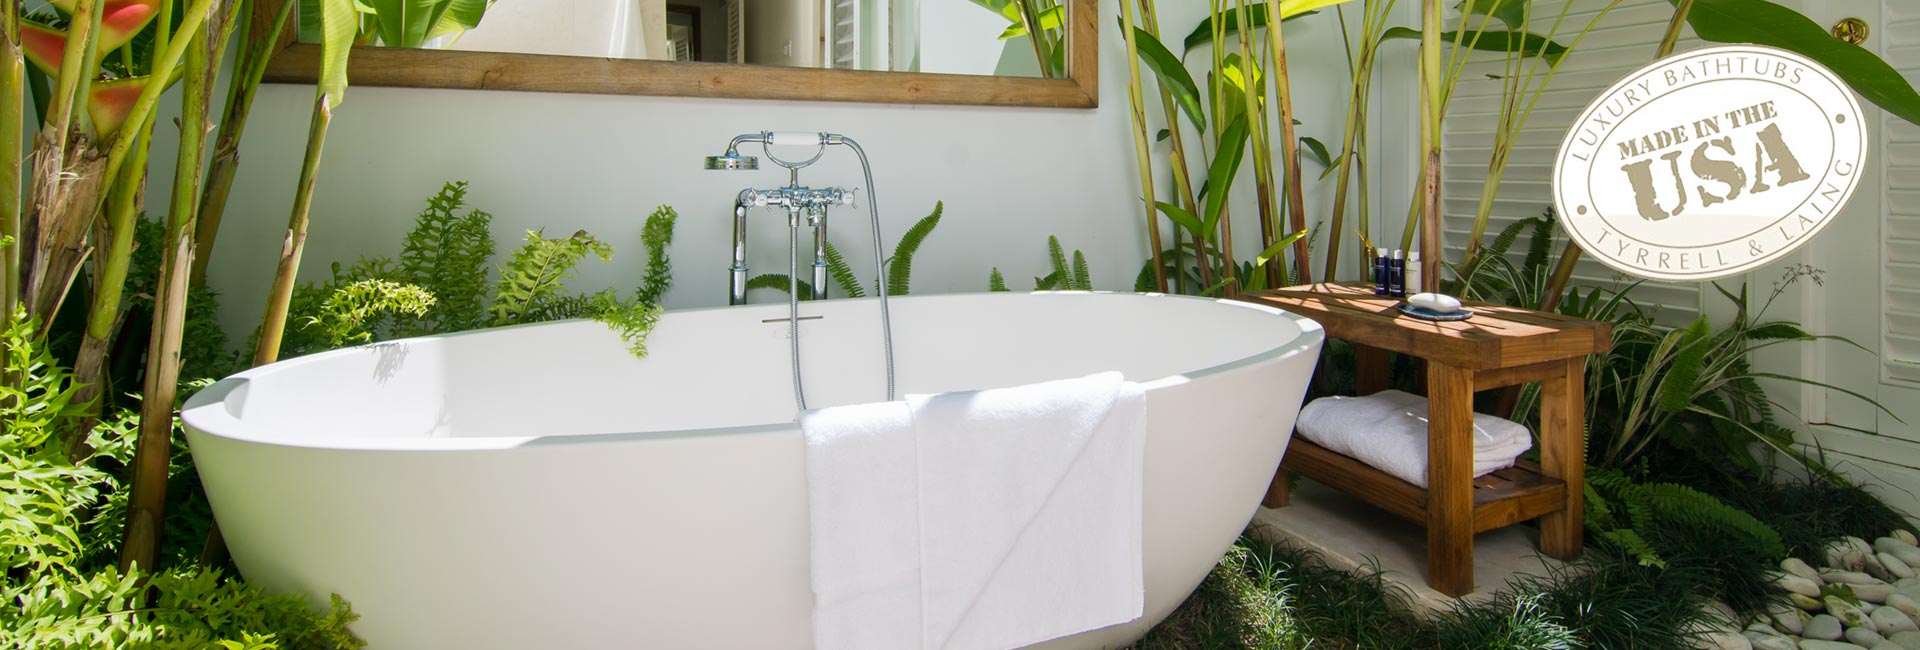 Freestanding jetted bathtubs | Air spa tubs